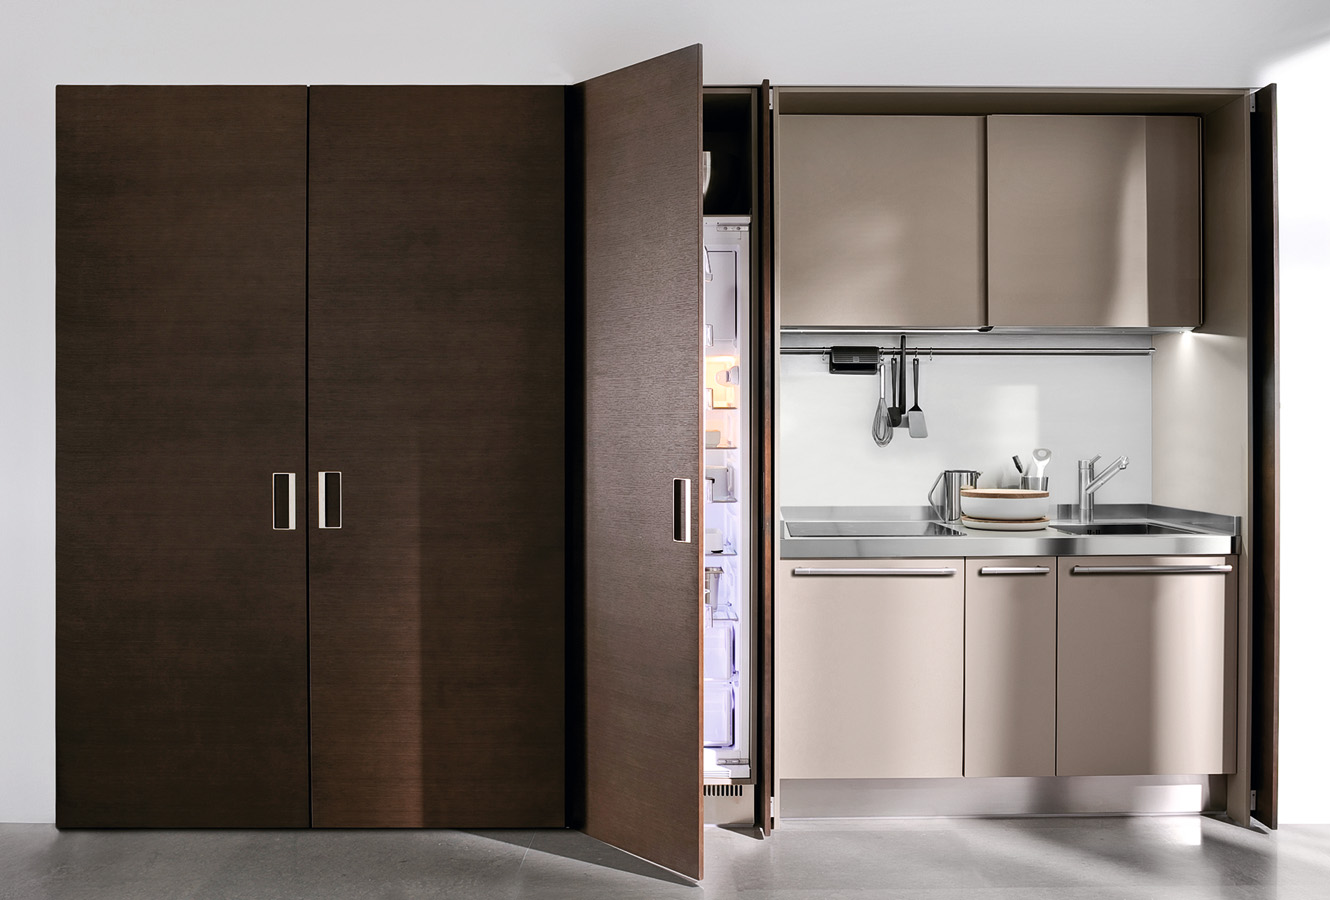 Hidden Refridegrator - Modern italian kitchen design from arclinea